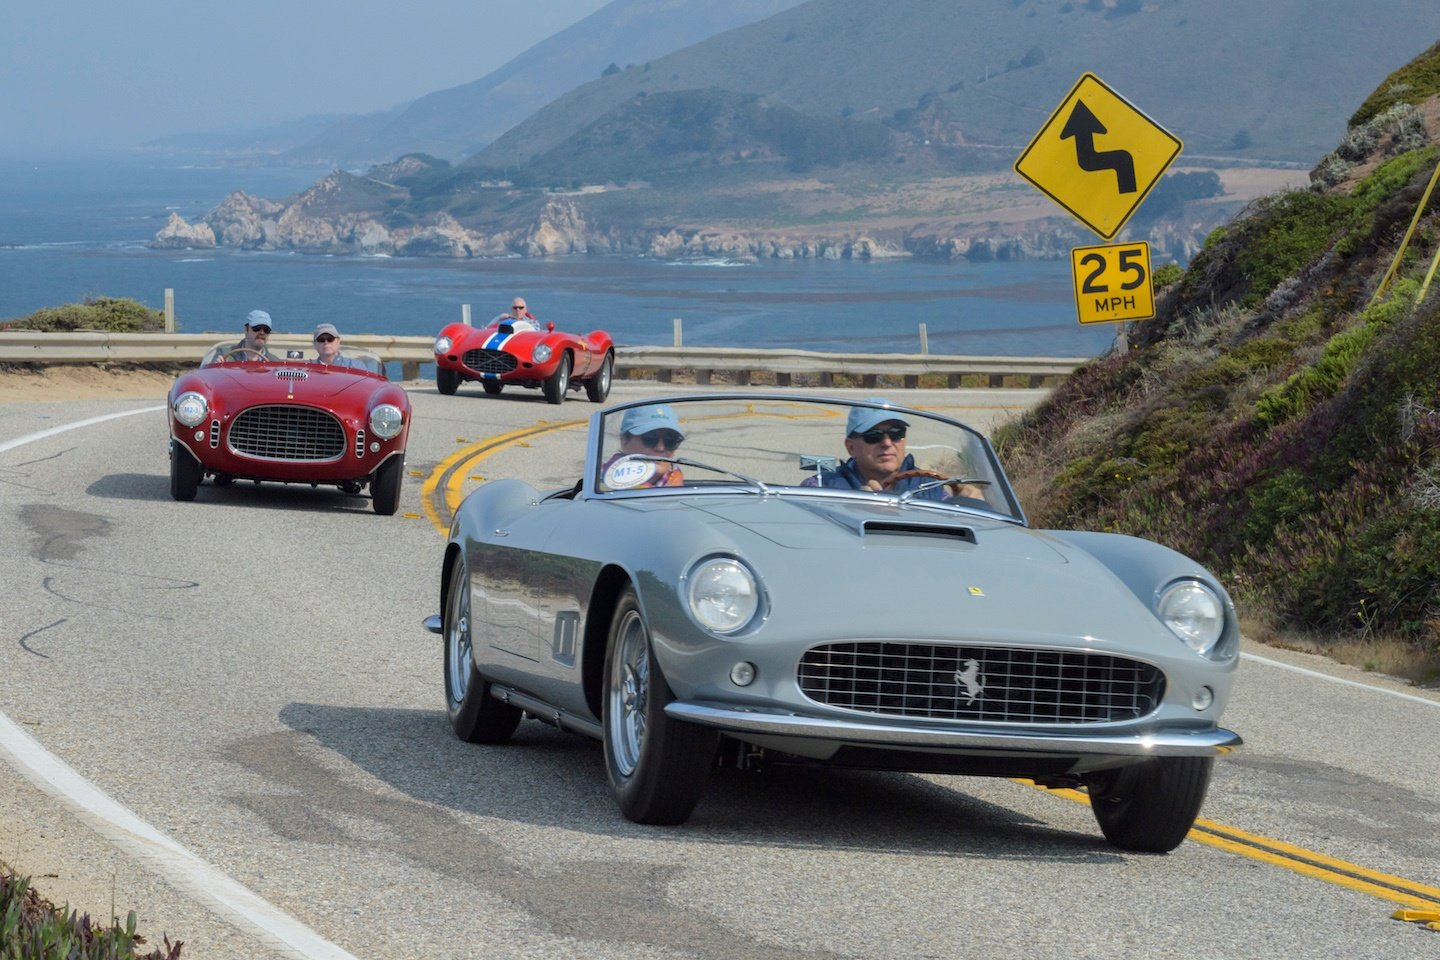 The Best of Monterey Car Week 2018 - Part 1